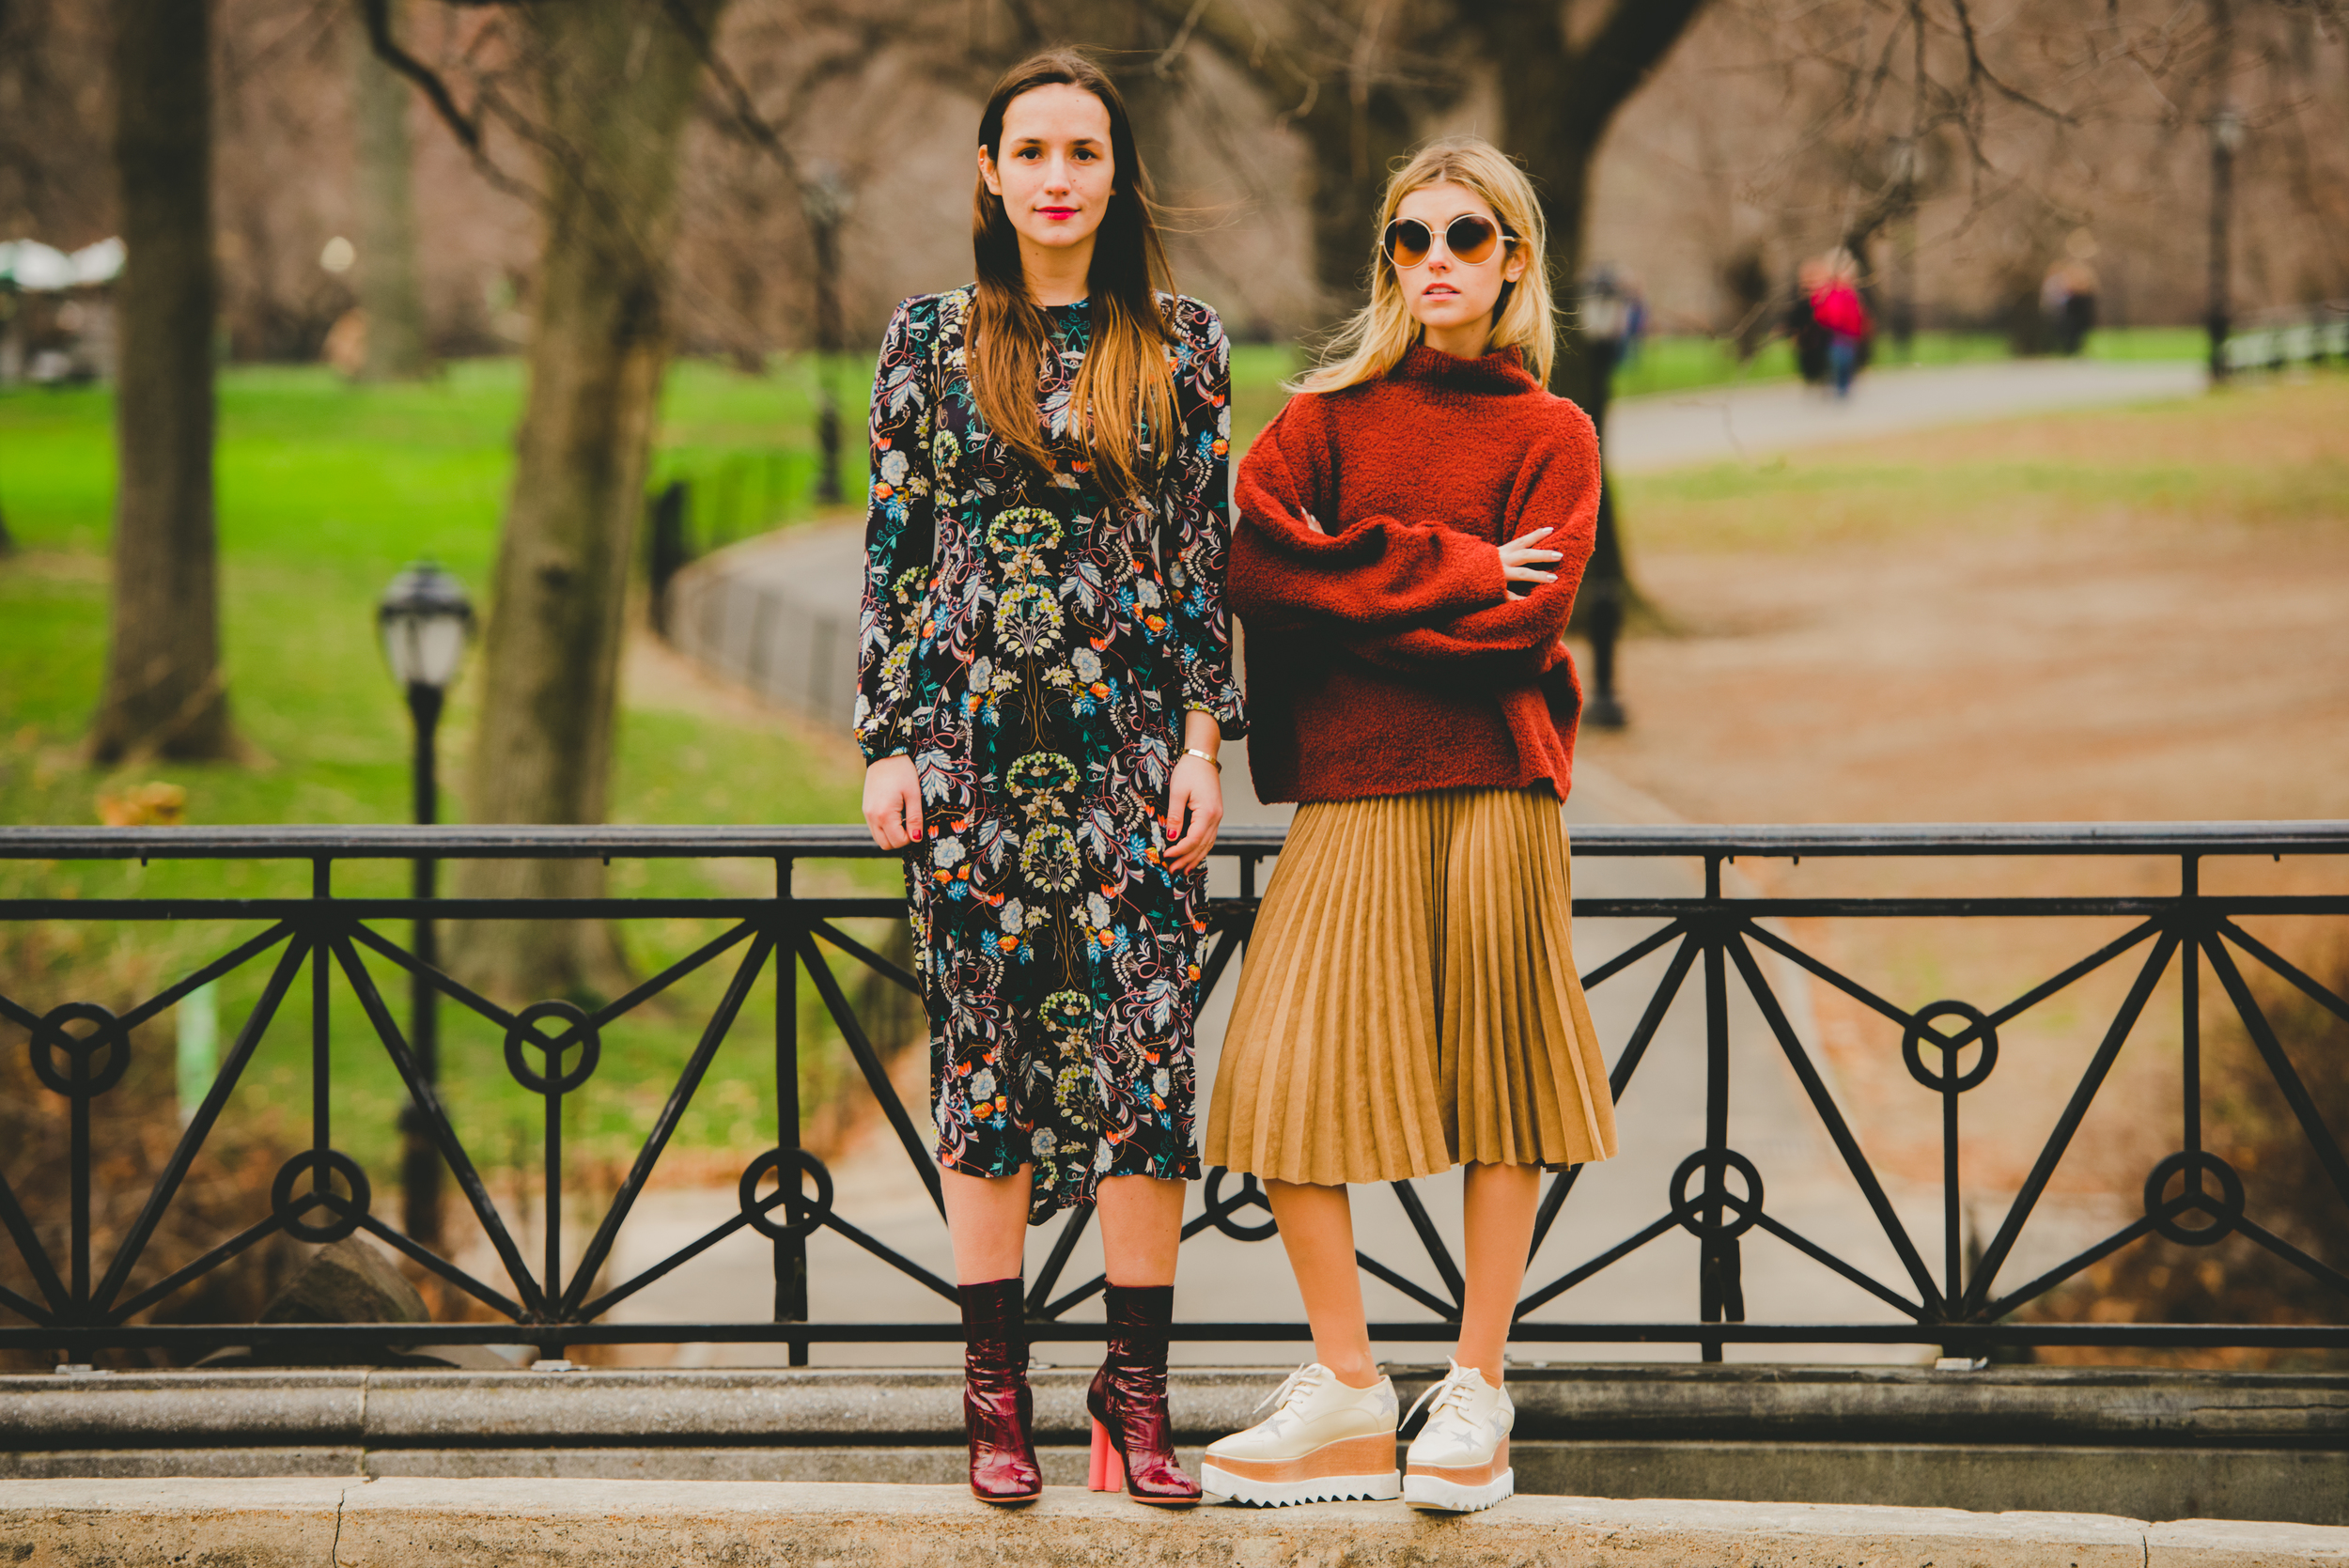 NYC Fashion Blogger Sisters in Central Park Sophie and Charlotte Bickley